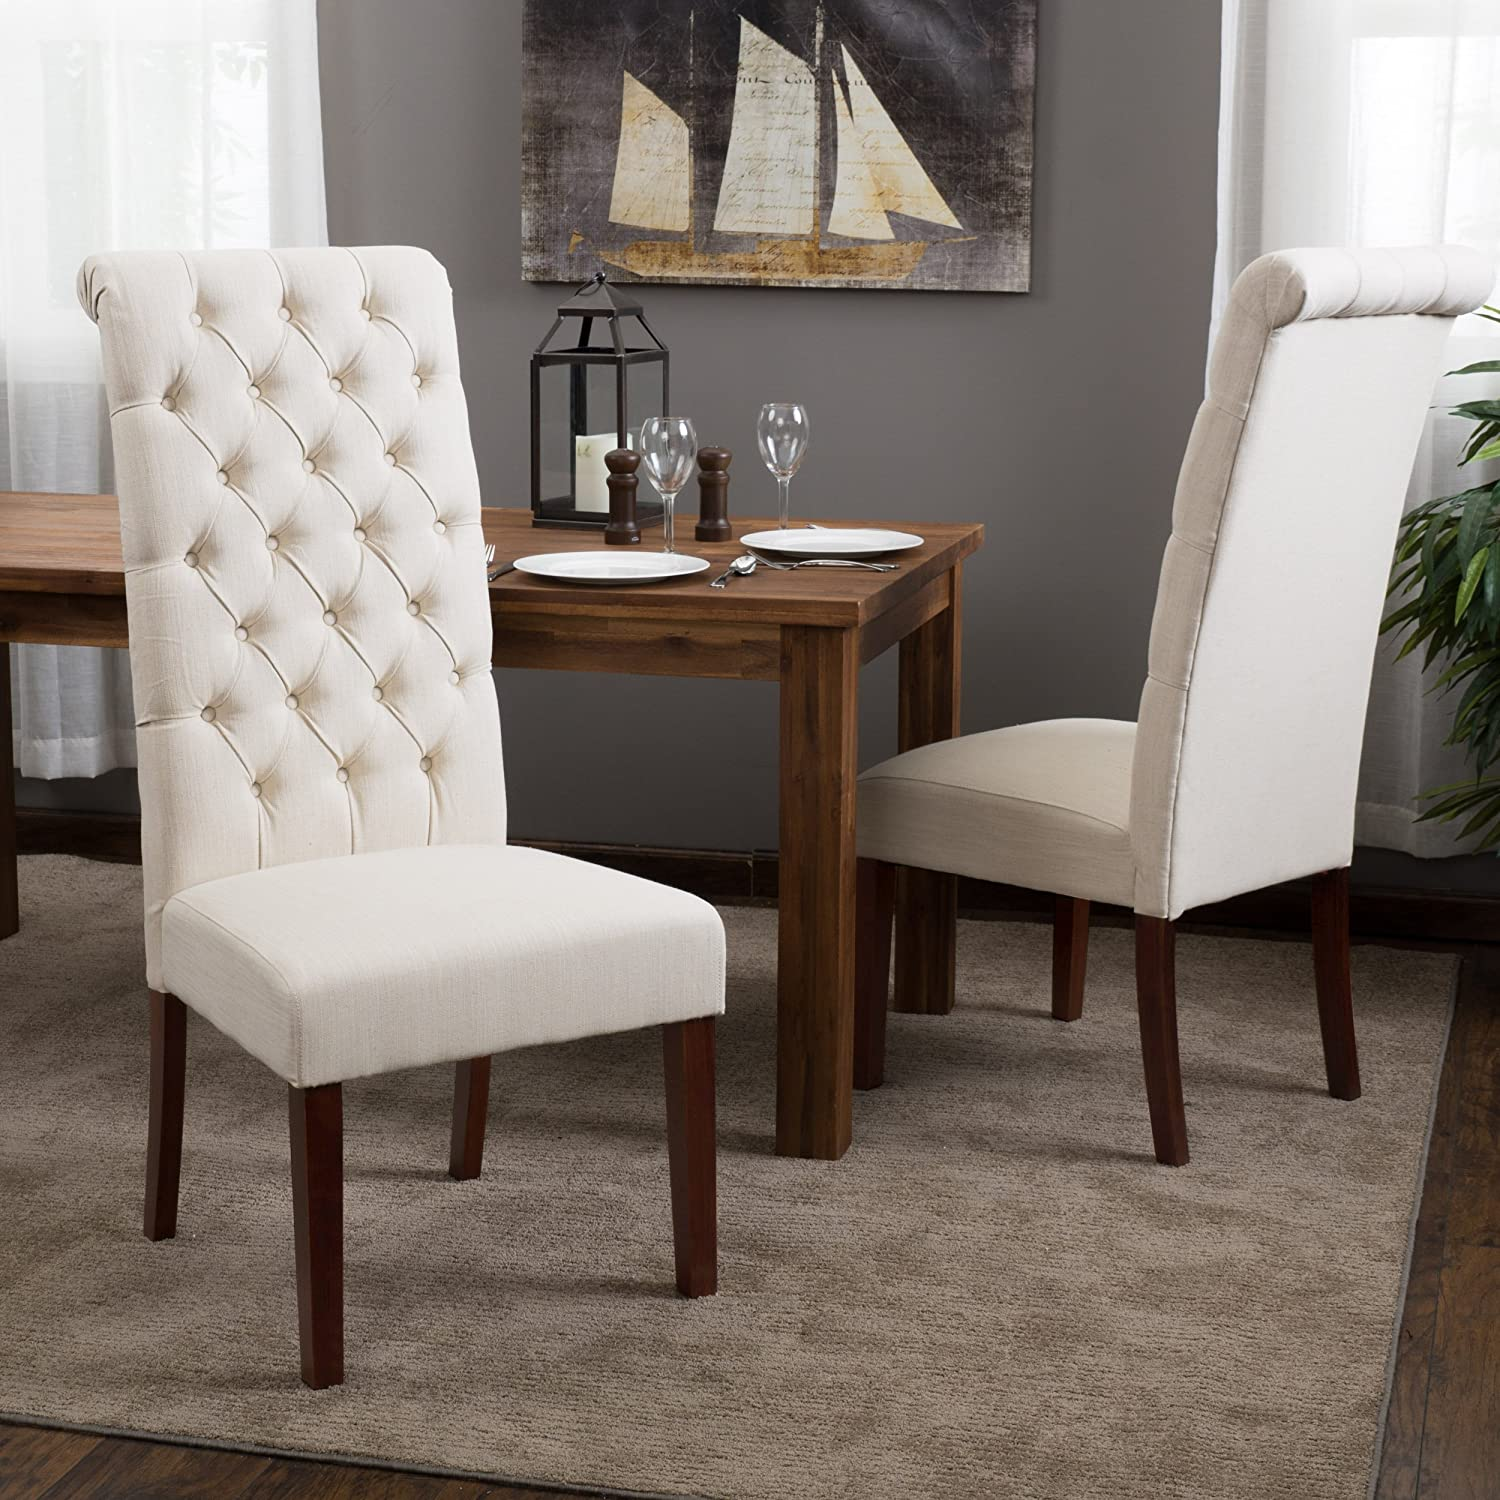 Amazon.com   Best Selling Natural Tall Tufted Dining Chair, 2 Pack   Chairs